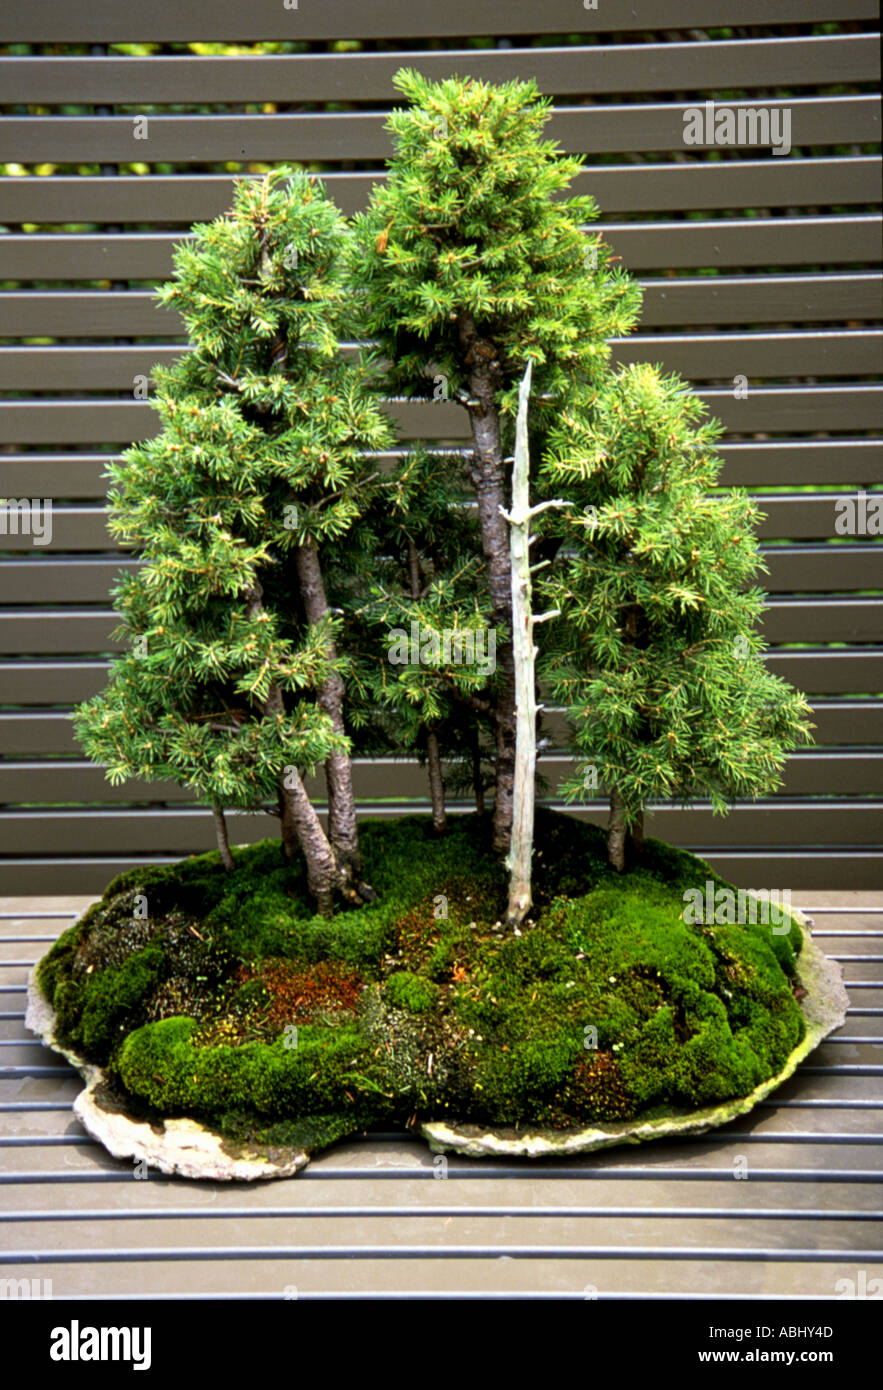 Juniper Bonsai Forest Stock Photo Alamy